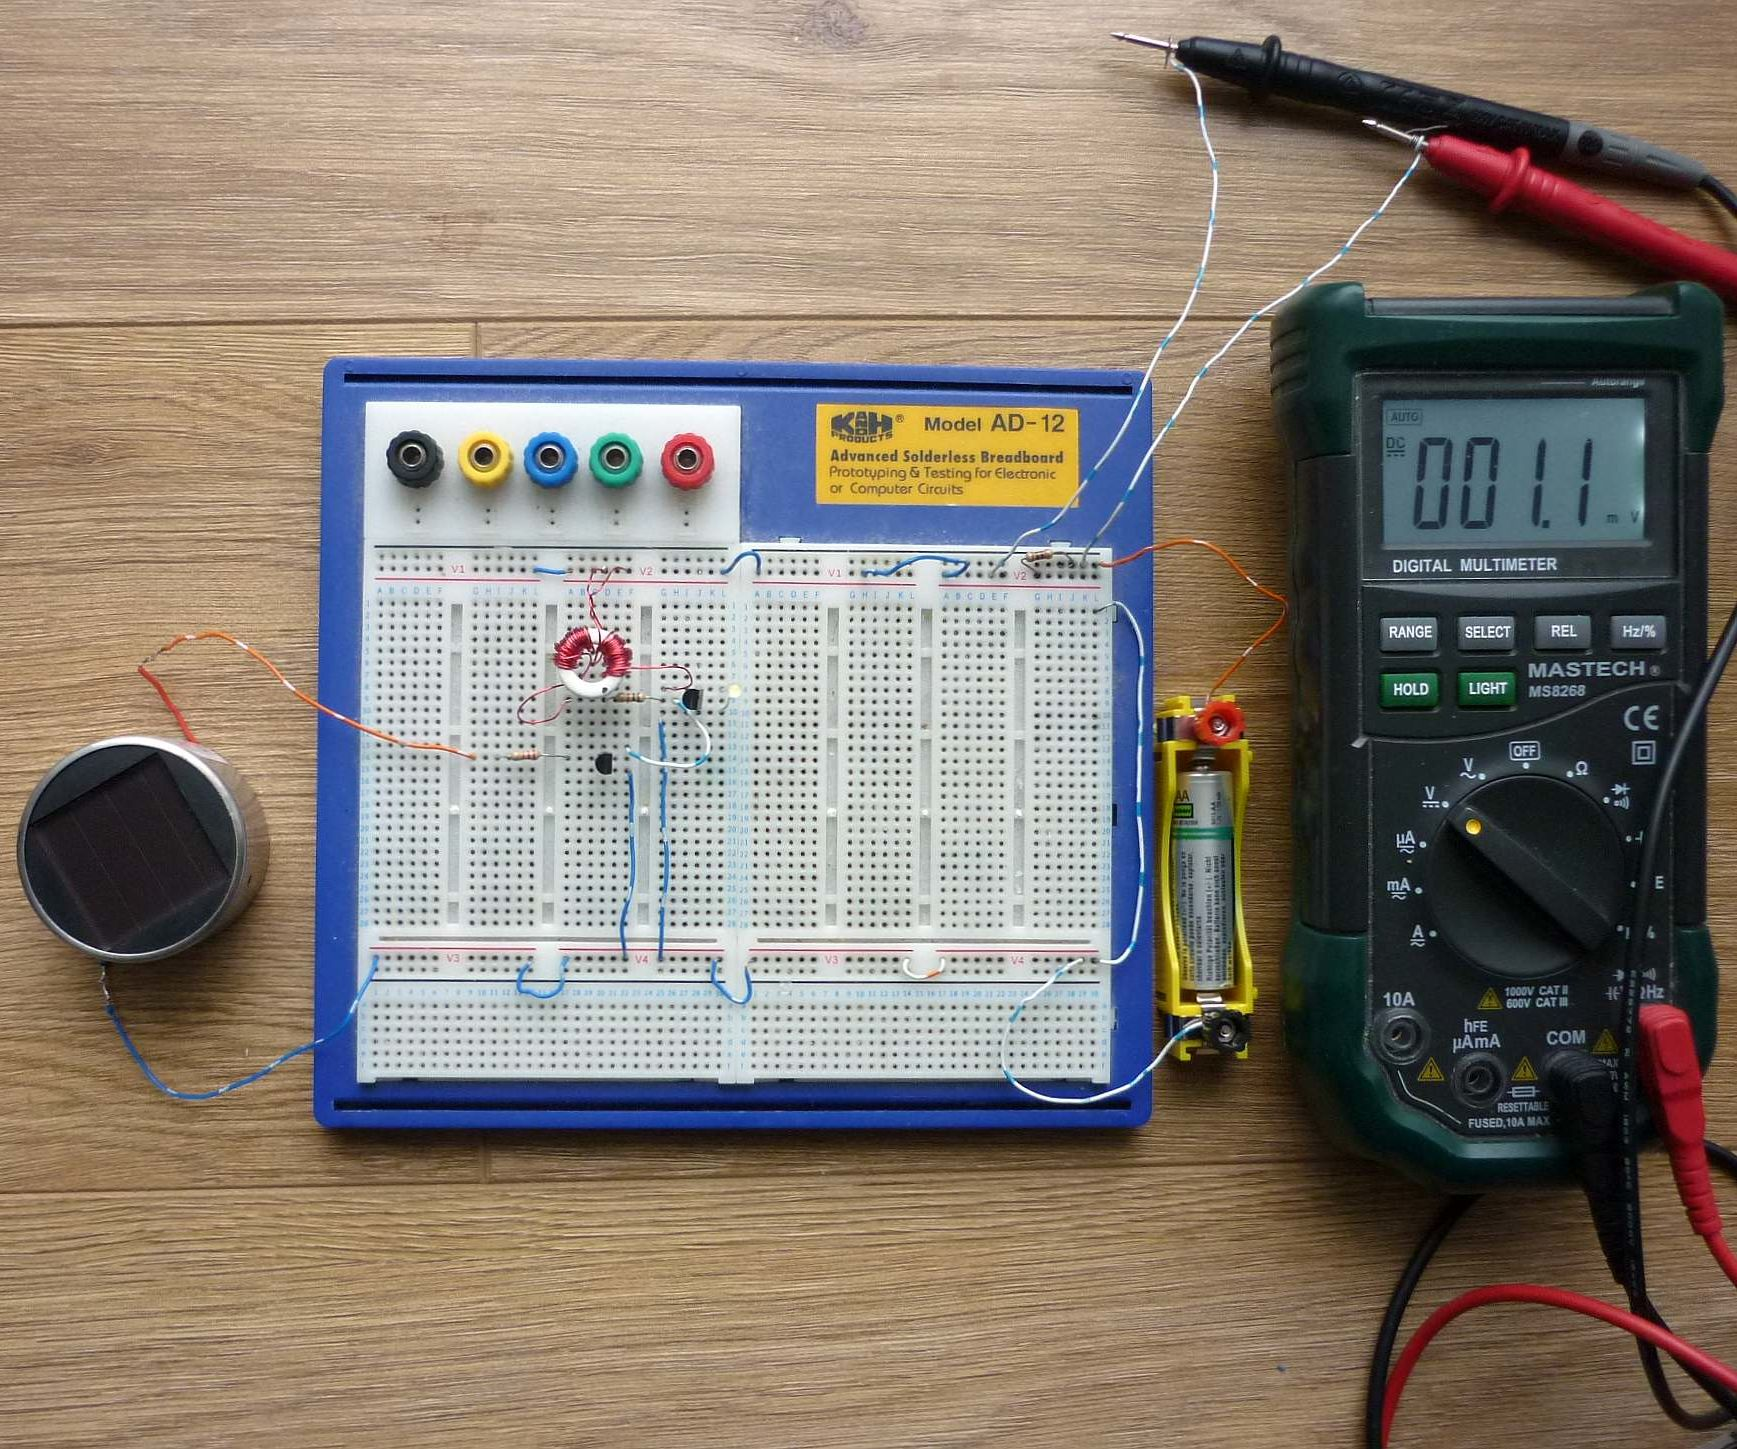 How to Switch Off a Joule Thief During Daylight